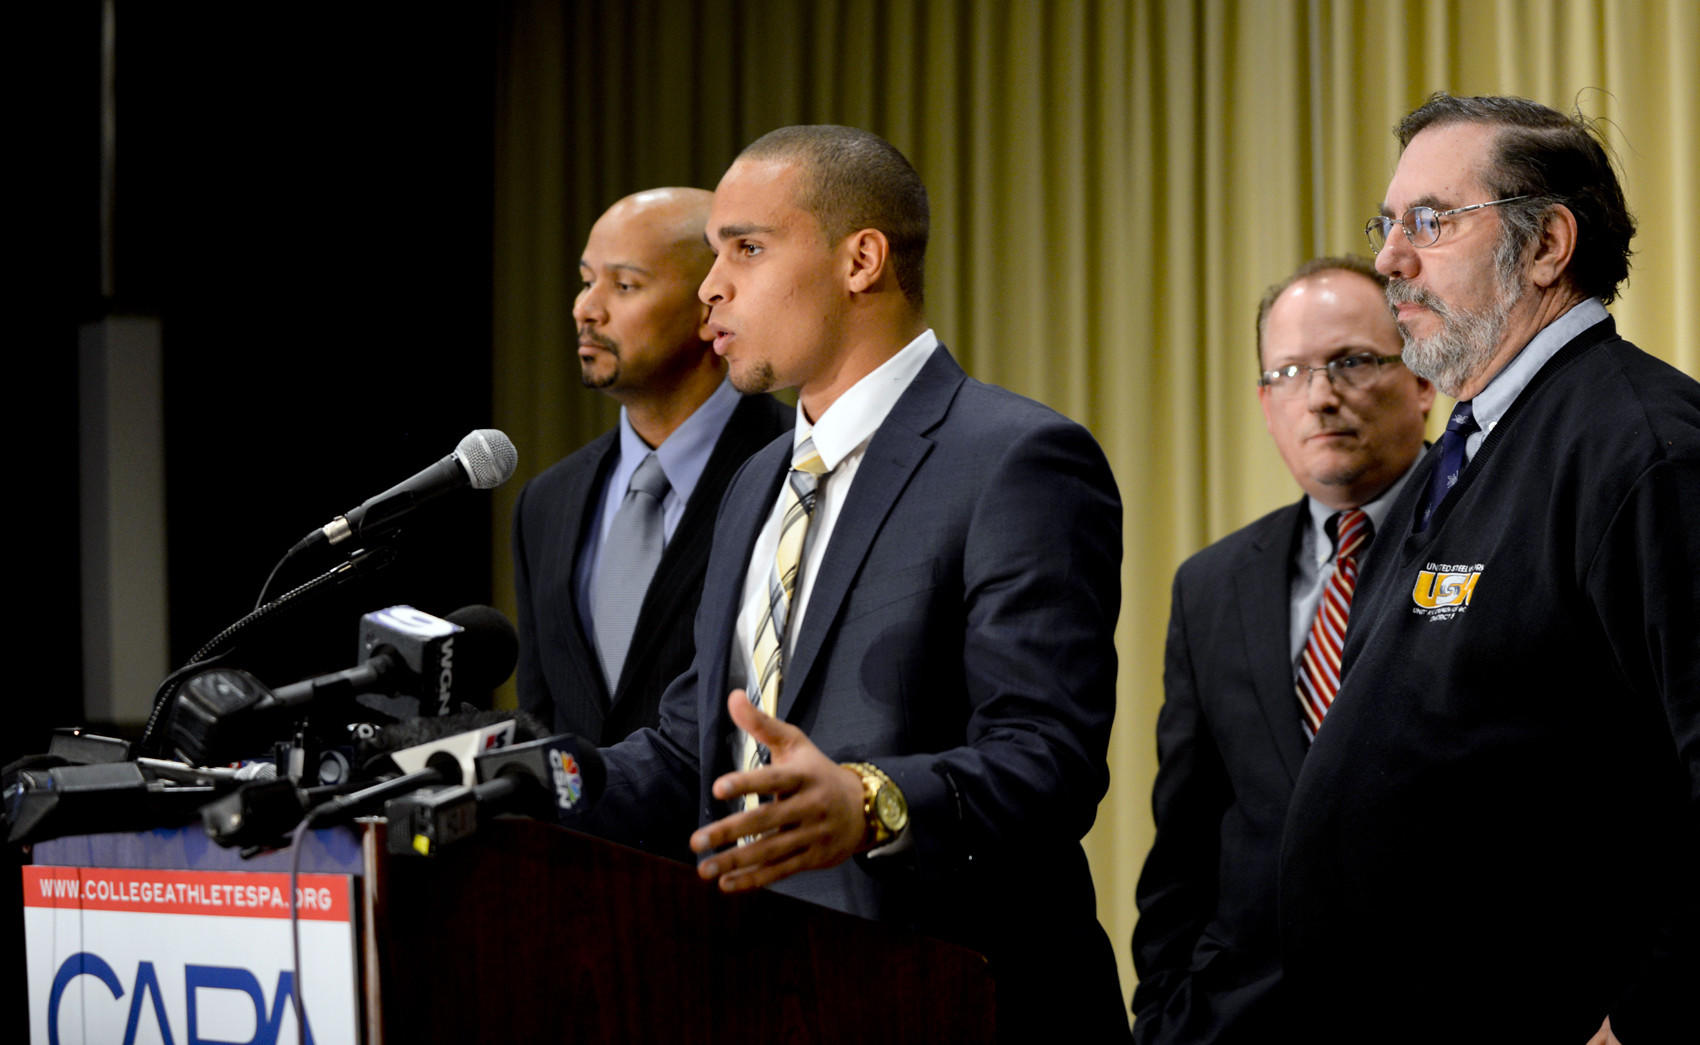 (From left to right) CAPA president Ramogi Huma, Northwestern University quarterback Kain Colter, United Steelworkers (USW) national political director Tim Waters, and United Steelworkersm (USW) president Leo W. Gerard during a press conference for CAPA College Athletes Players Association at Hyatt Regency.